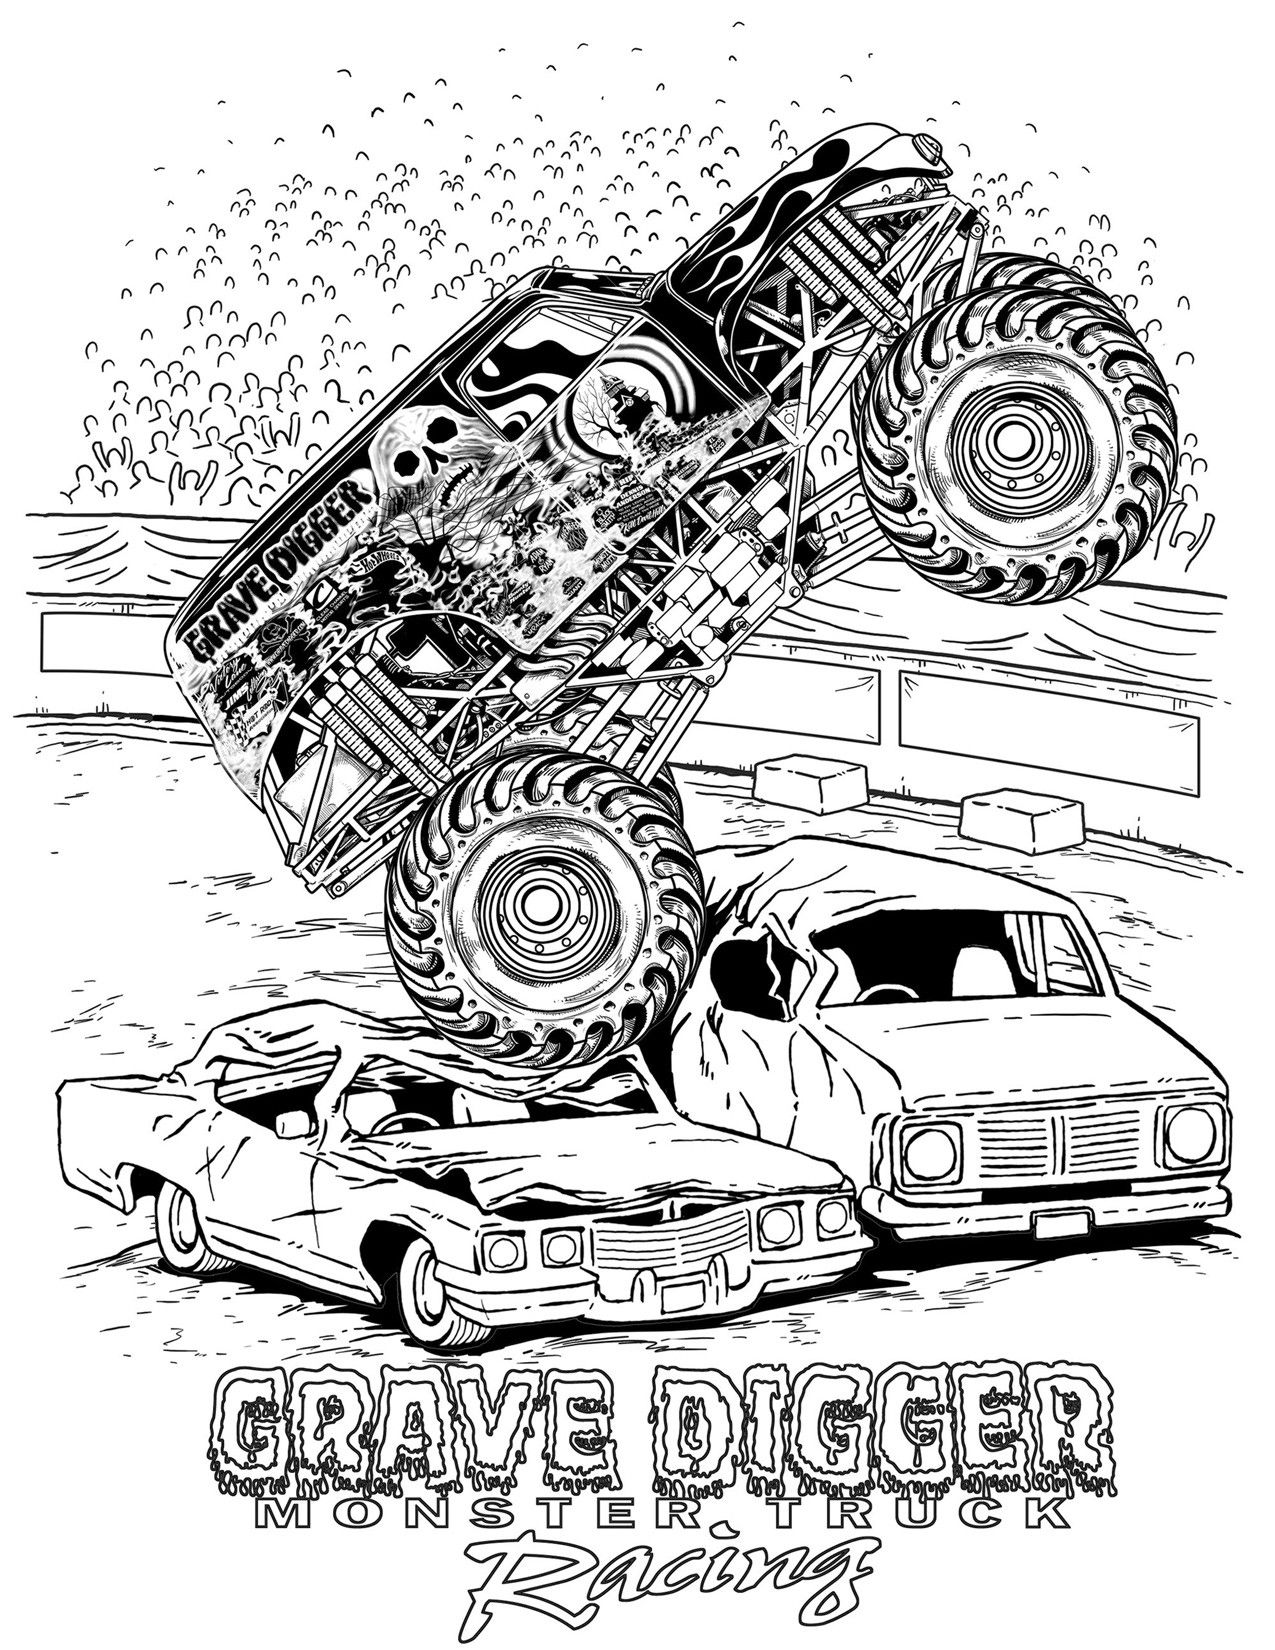 Coloringan Com The Leading Coloring An Site On The Net Monster Truck Monster Trucks Kostenlose Ausmalbilder